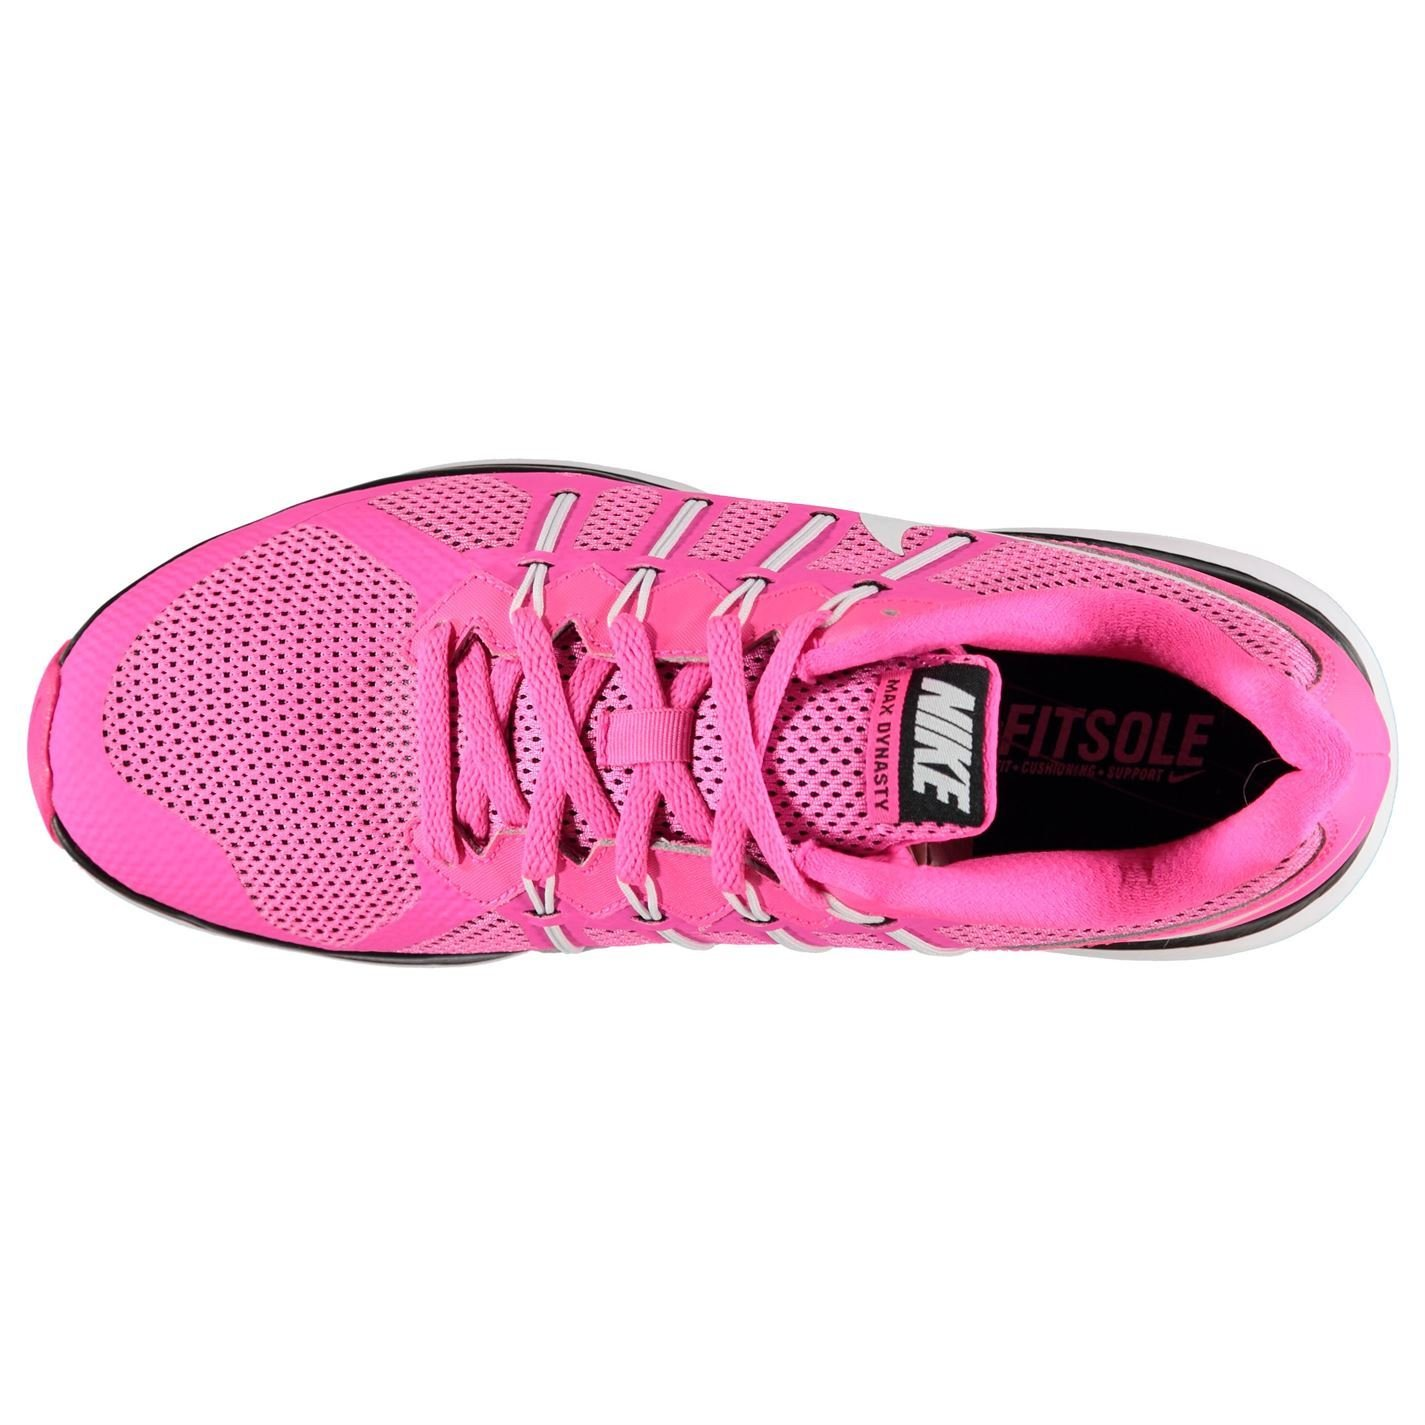 hot sale online 18864 e1951 Nike Air Max Dynasty Training Shoes Womens Pink Wht Fitness Trainers  Sneakers (UK7) (EU41) (US9.5)  Amazon.co.uk  Sports   Outdoors